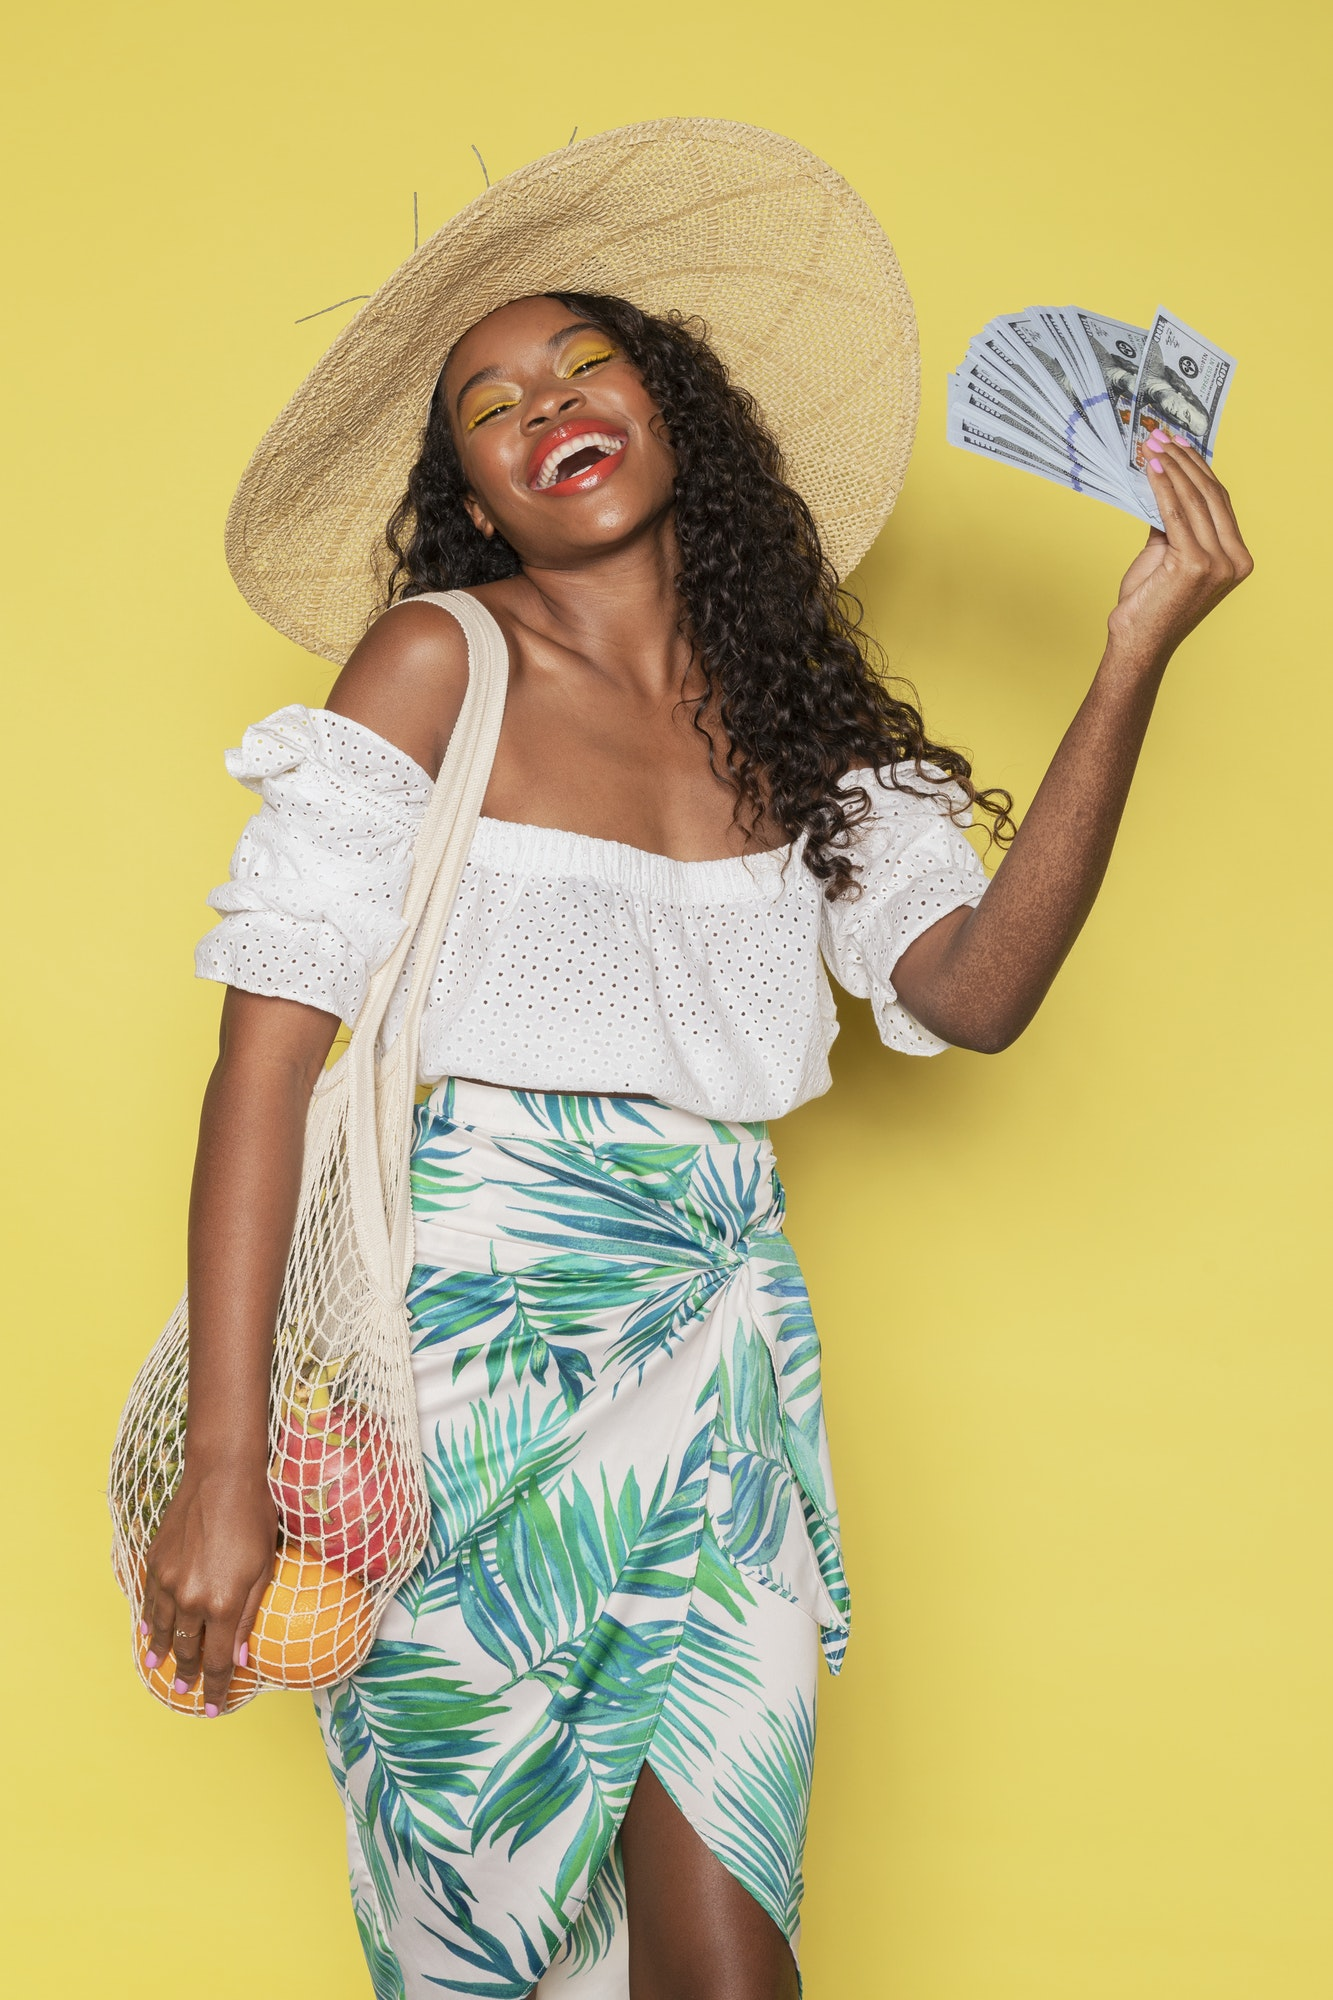 Happy woman spending money during her summer vacation